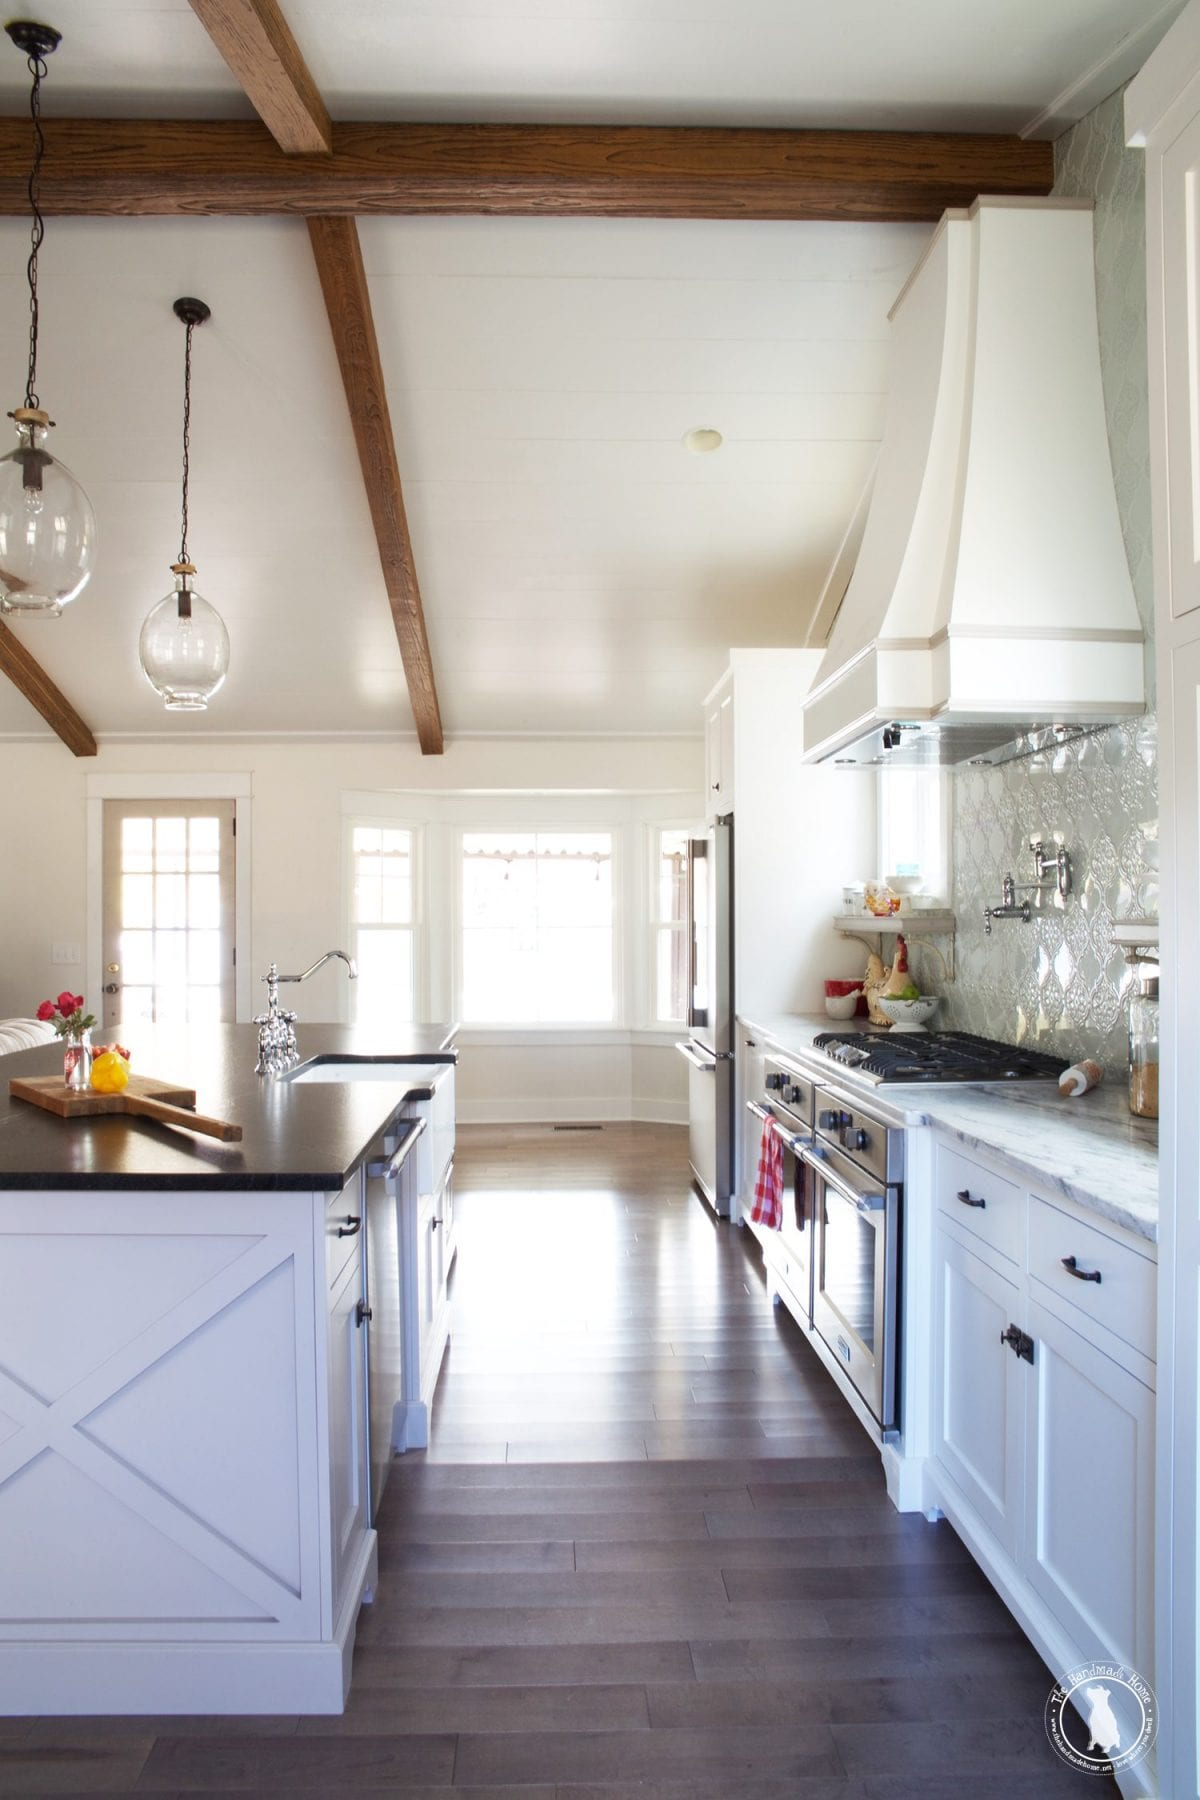 kitchen_side_by_side_double_ovens